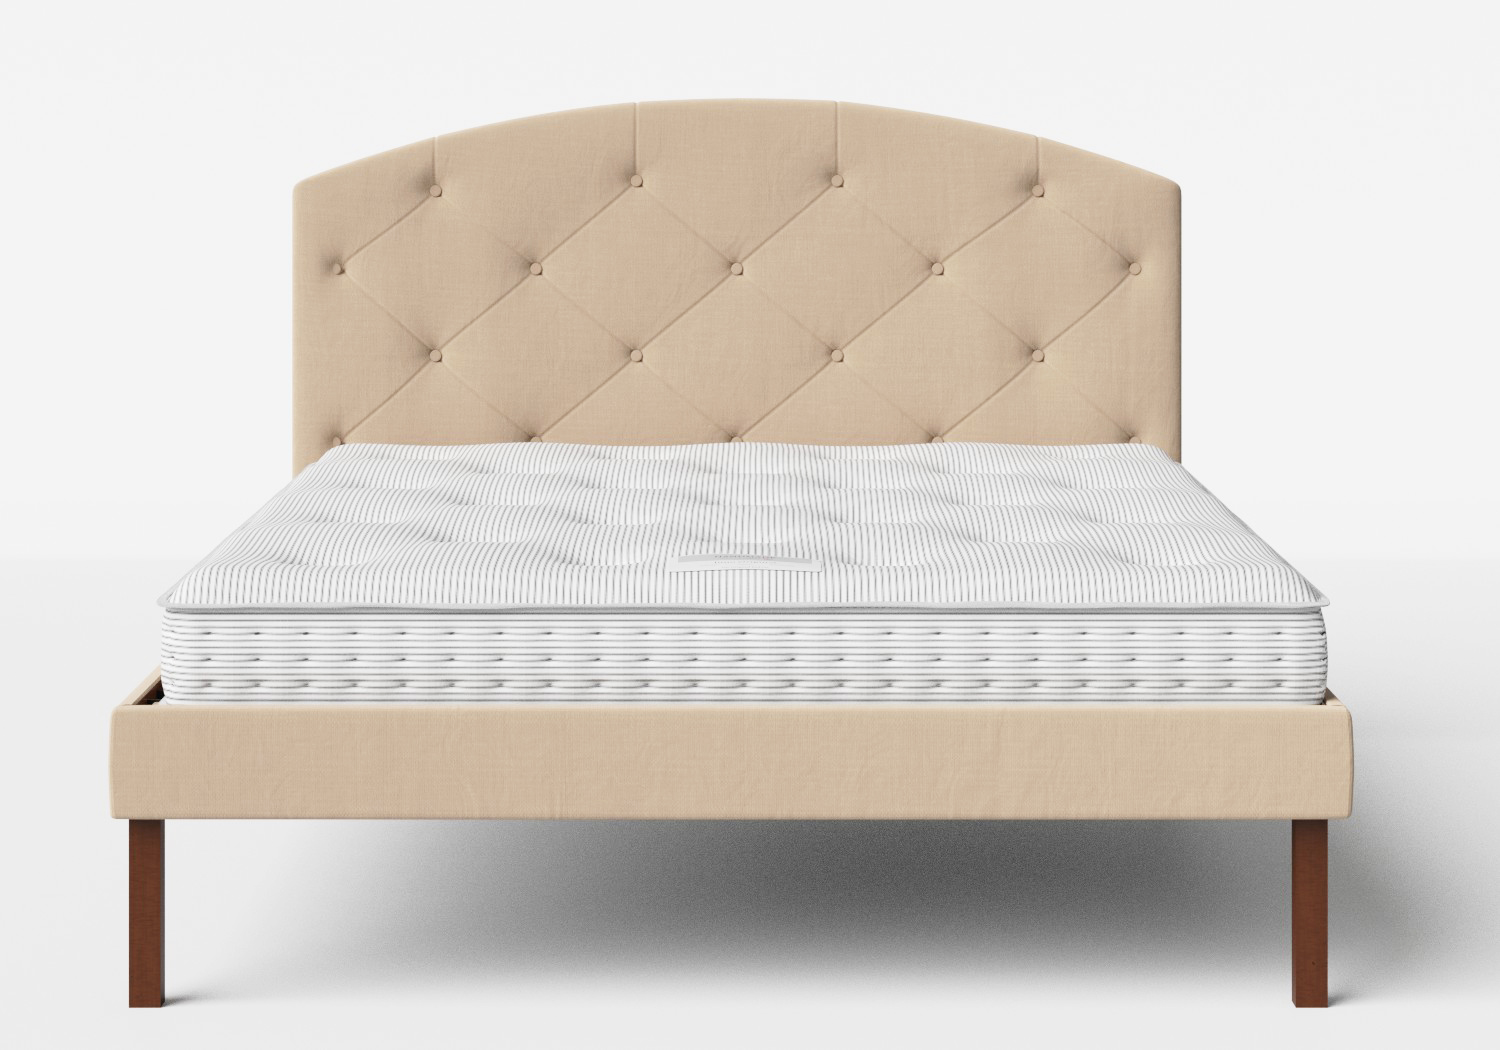 Okawa Upholstered Bed in Natural fabric with buttoning shown with Juno 1 mattress